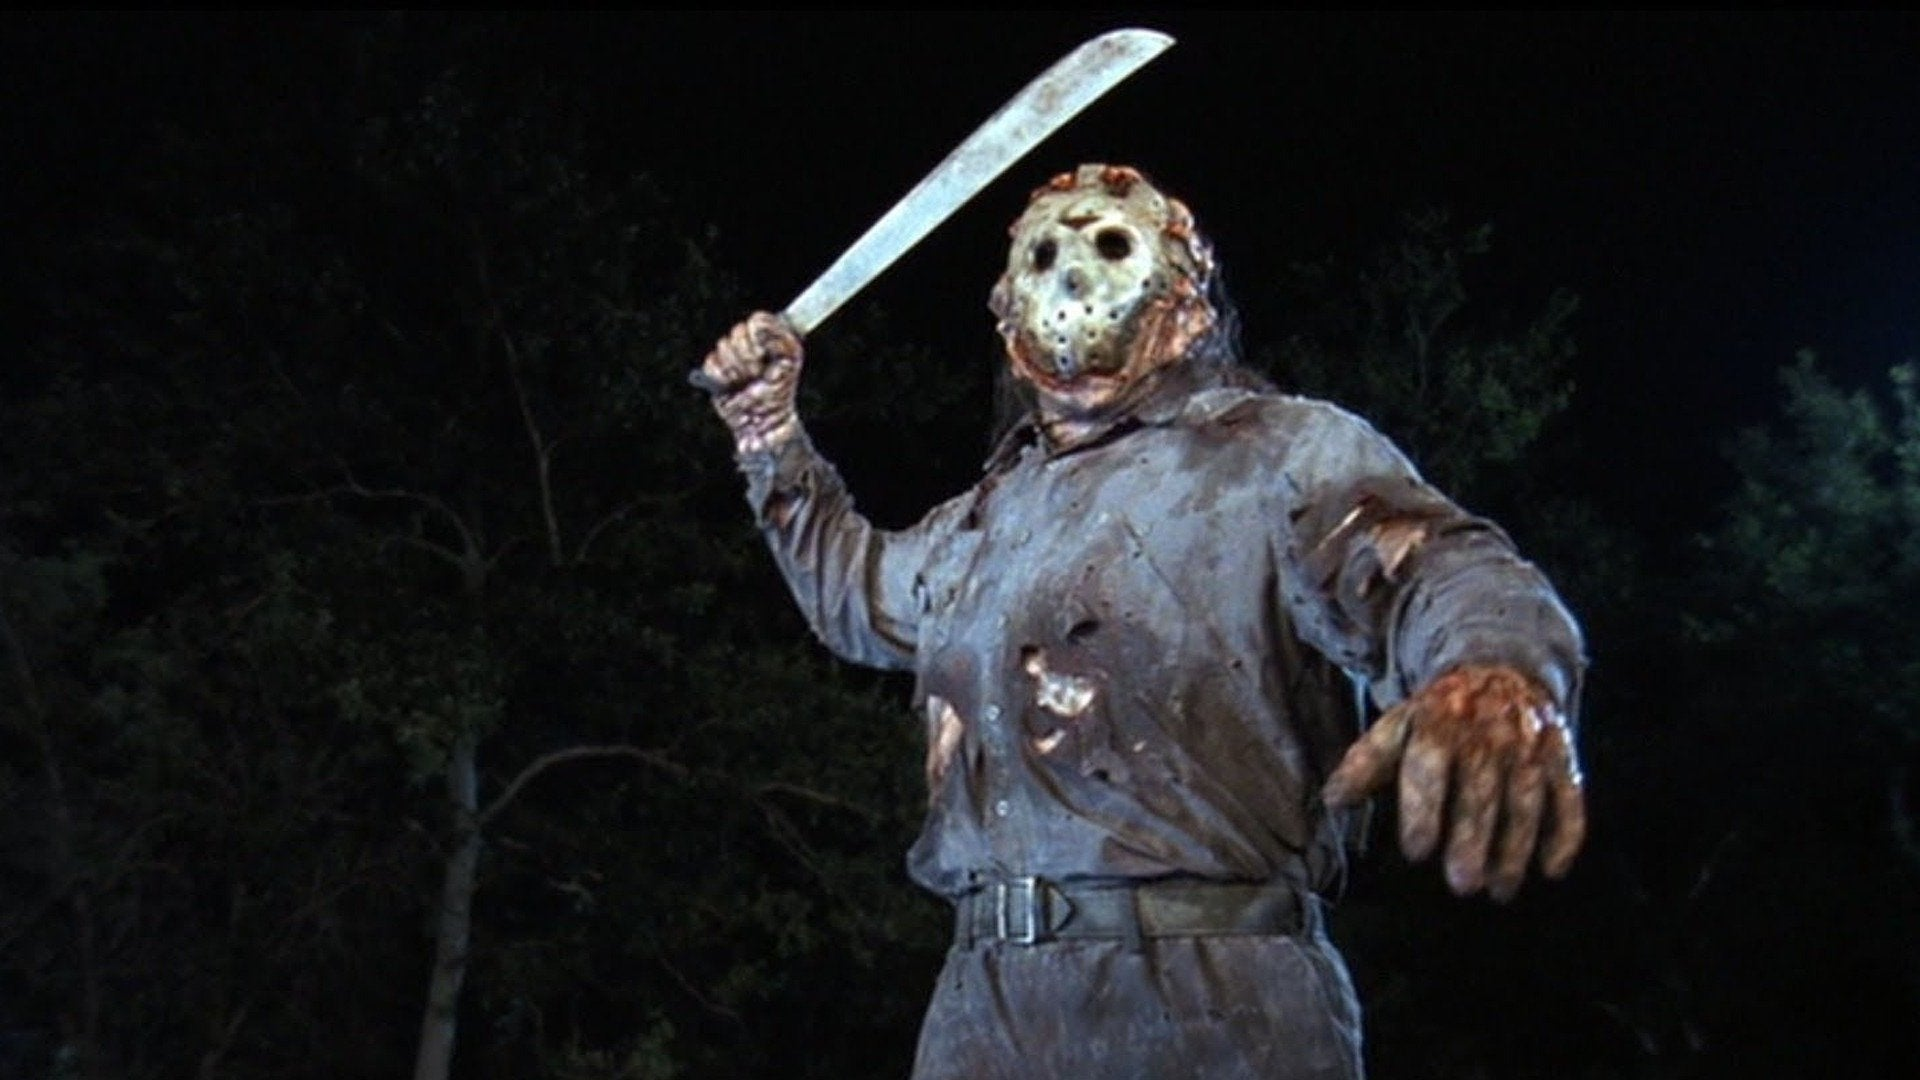 Friday the 13th Part IX: Jason Goes to Hell